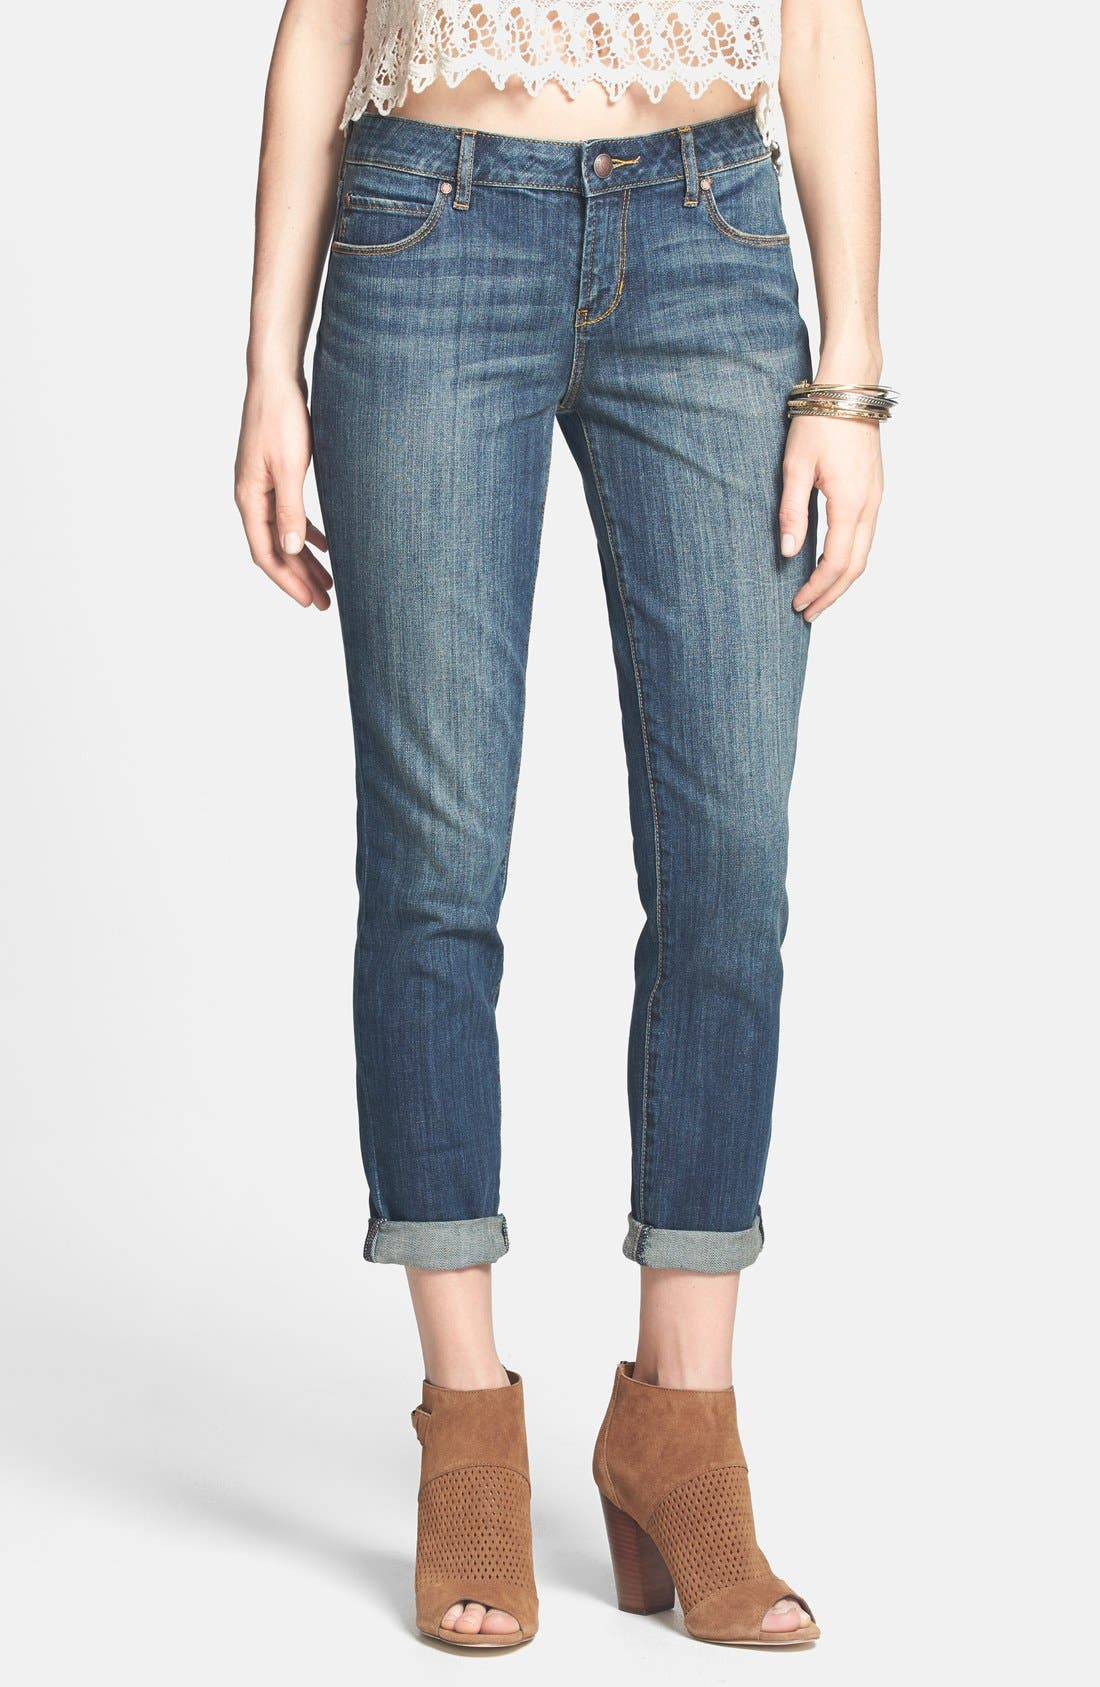 Alternate Image 1 Selected - Articles of Society 'Cindy - Girlfriend' Relaxed Crop Jeans (Medium Wash) (Juniors)